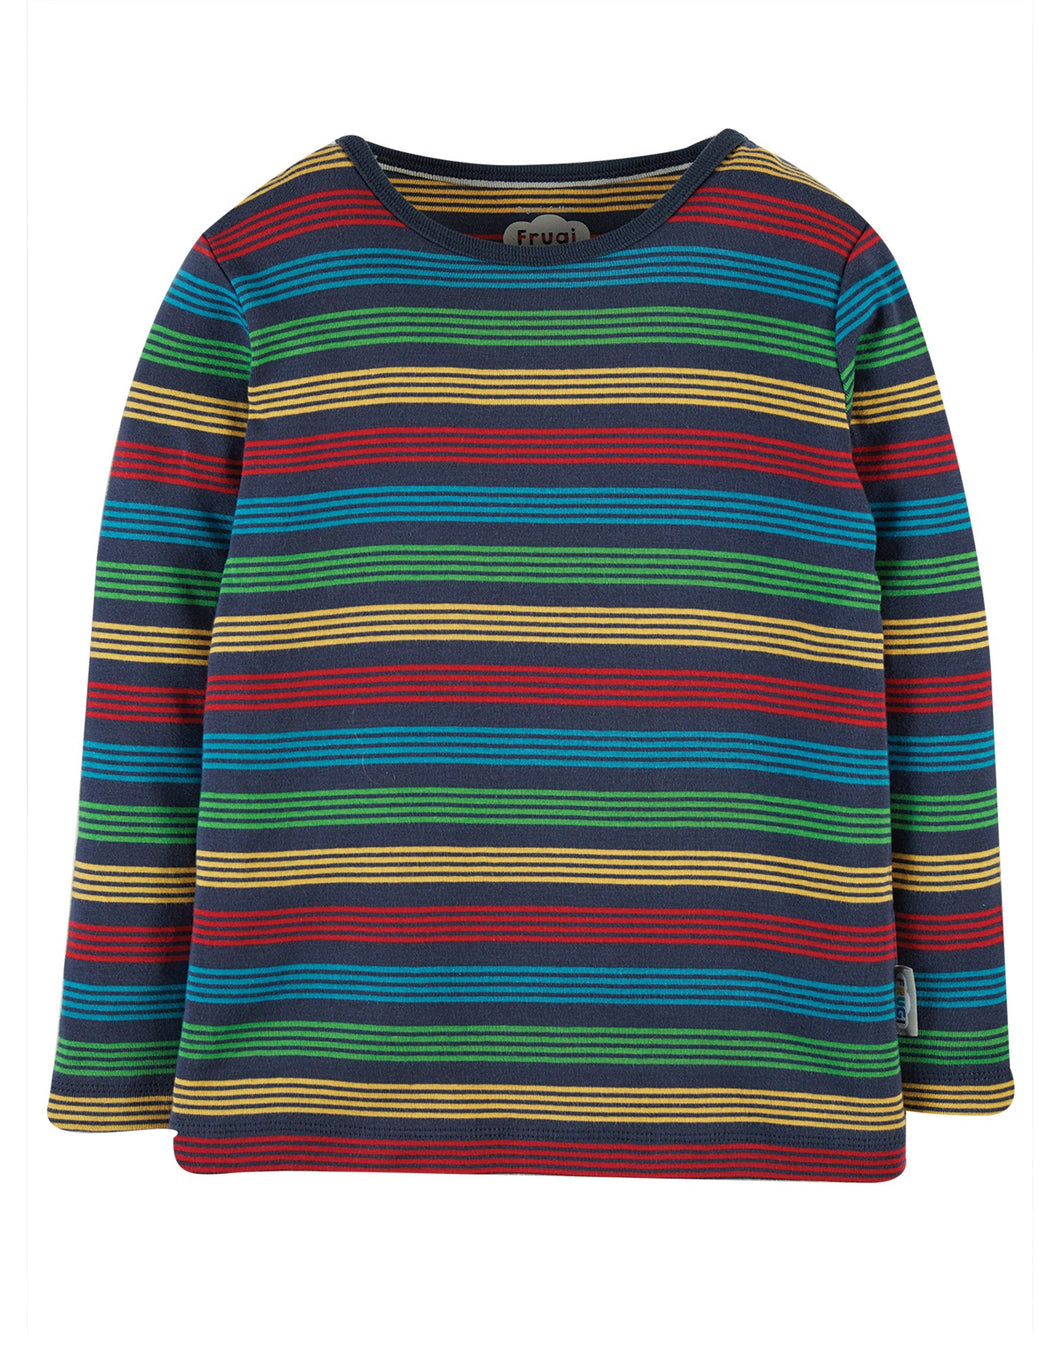 New Release Frugi Favourite Long Sleeve T-Shirt Tobermory Rainbow Stripe - The Thrifty Stork